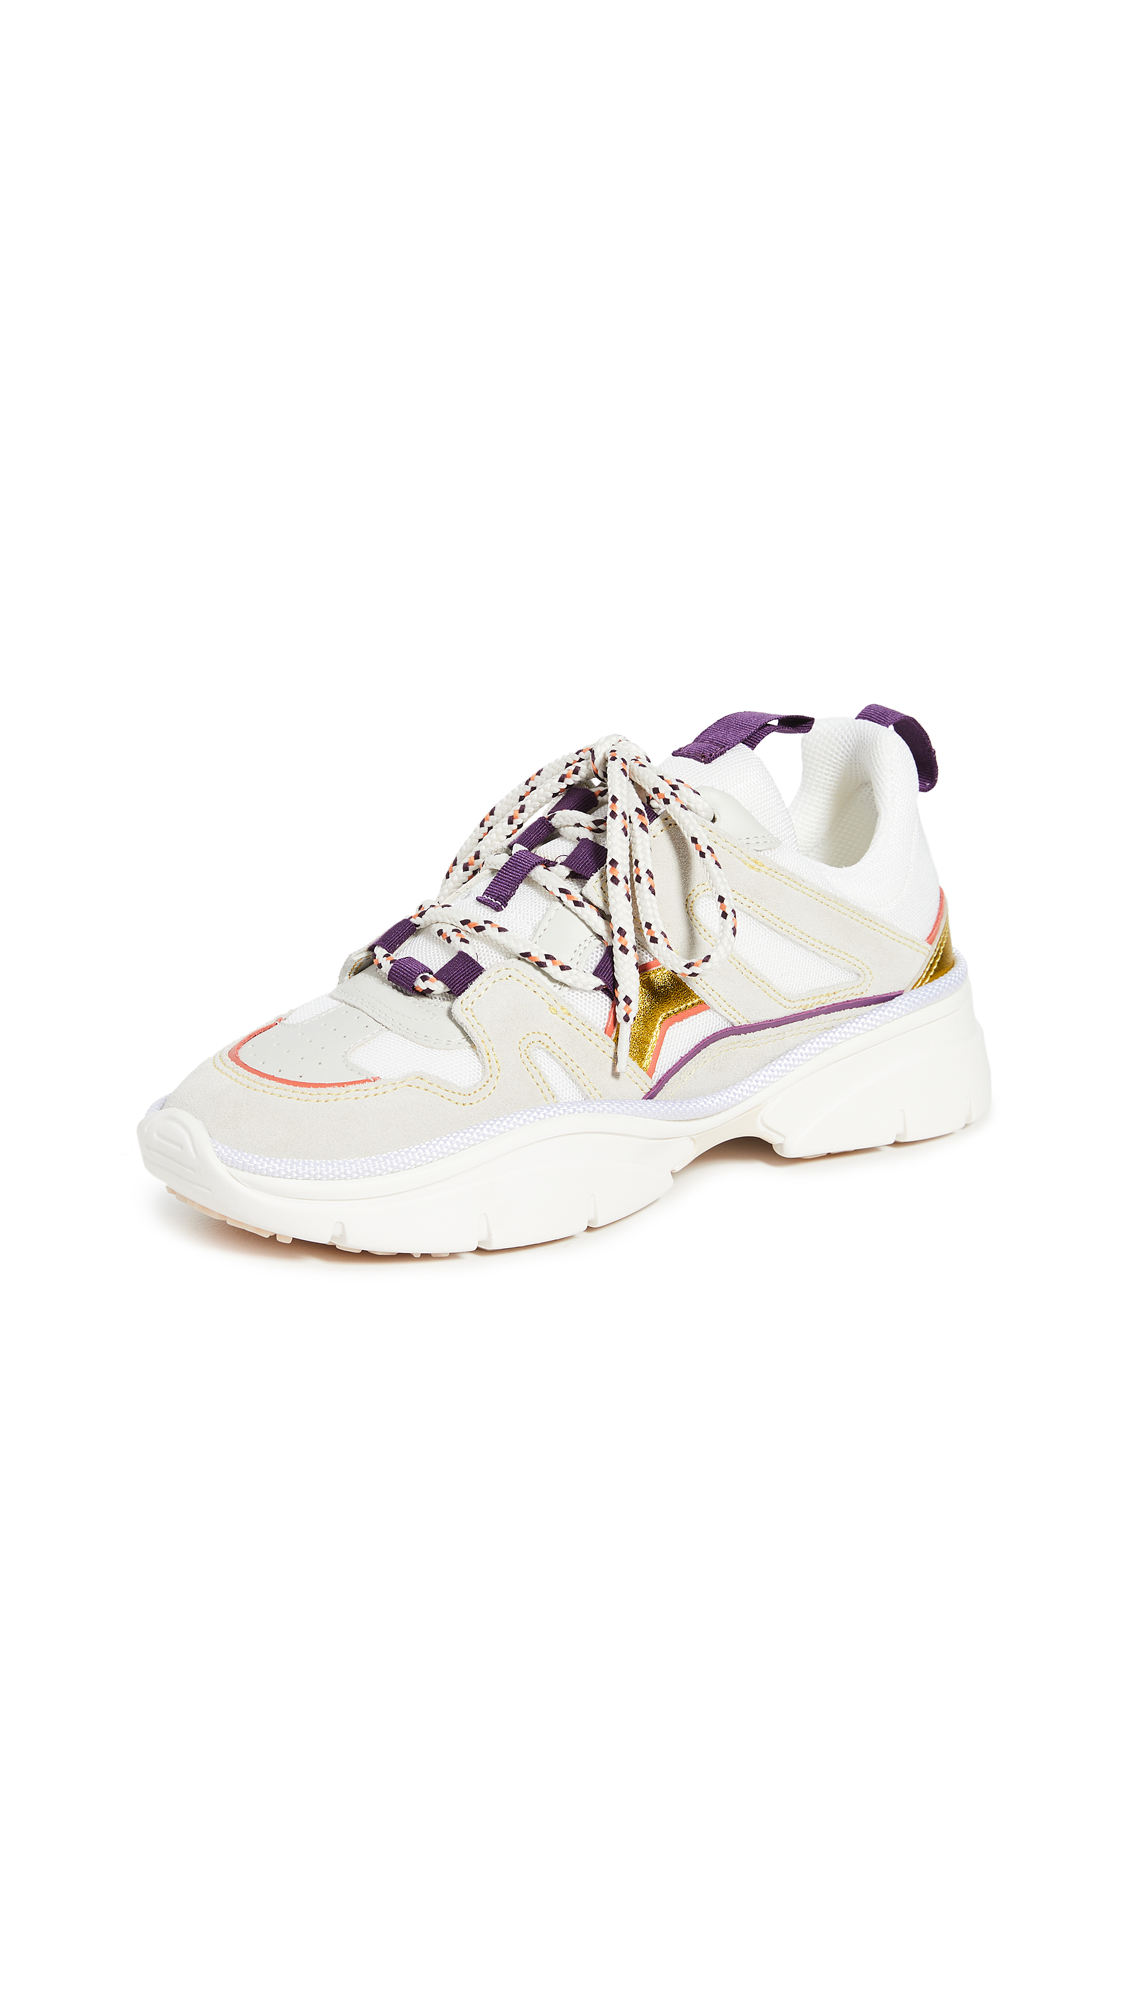 Isabel Marant Flashy Kindsay Running Sneakers - 40% Off Sale